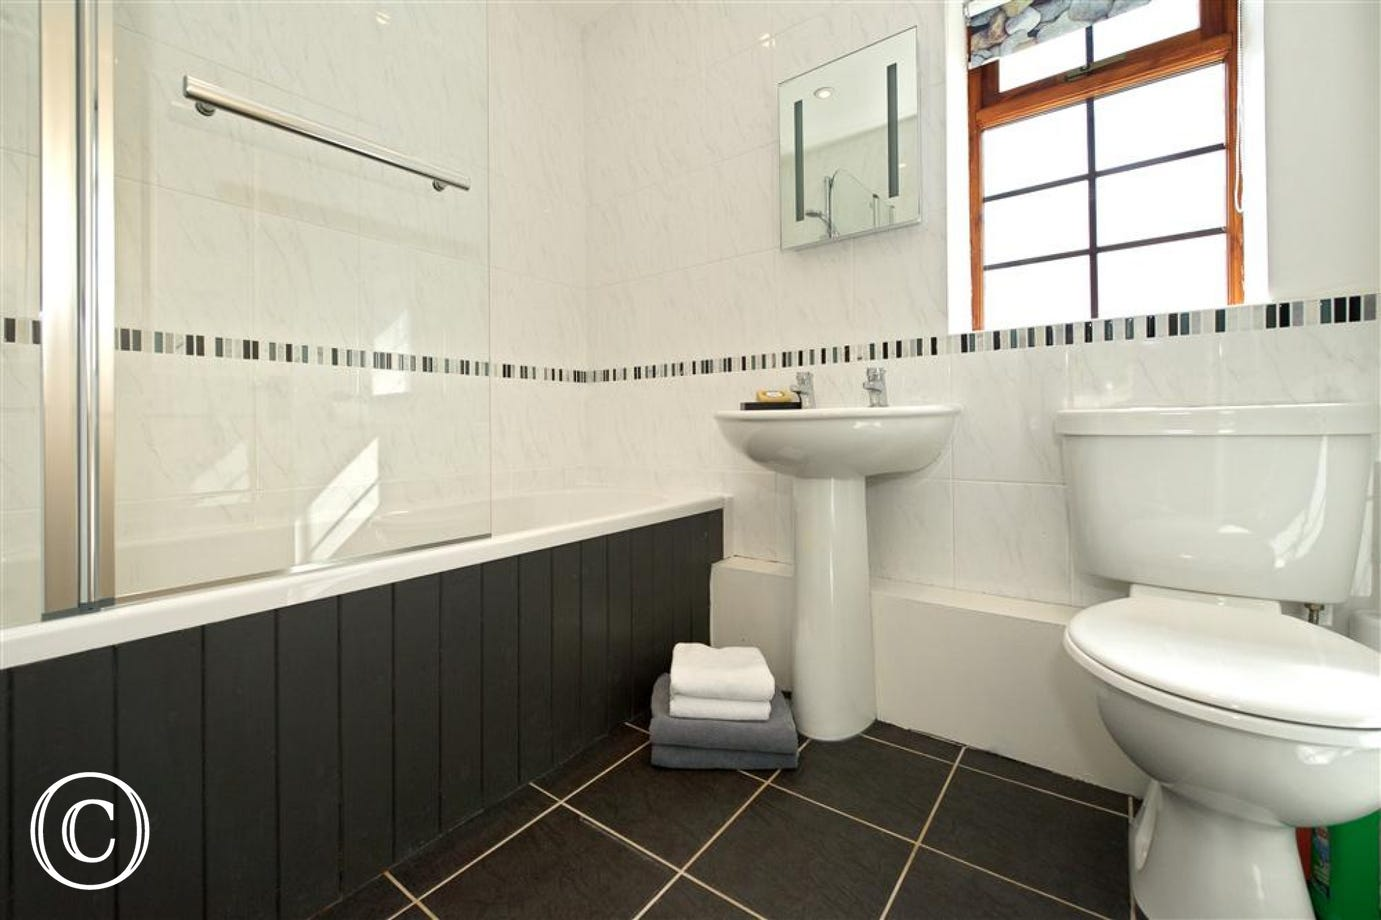 YBETWS - Bathroom